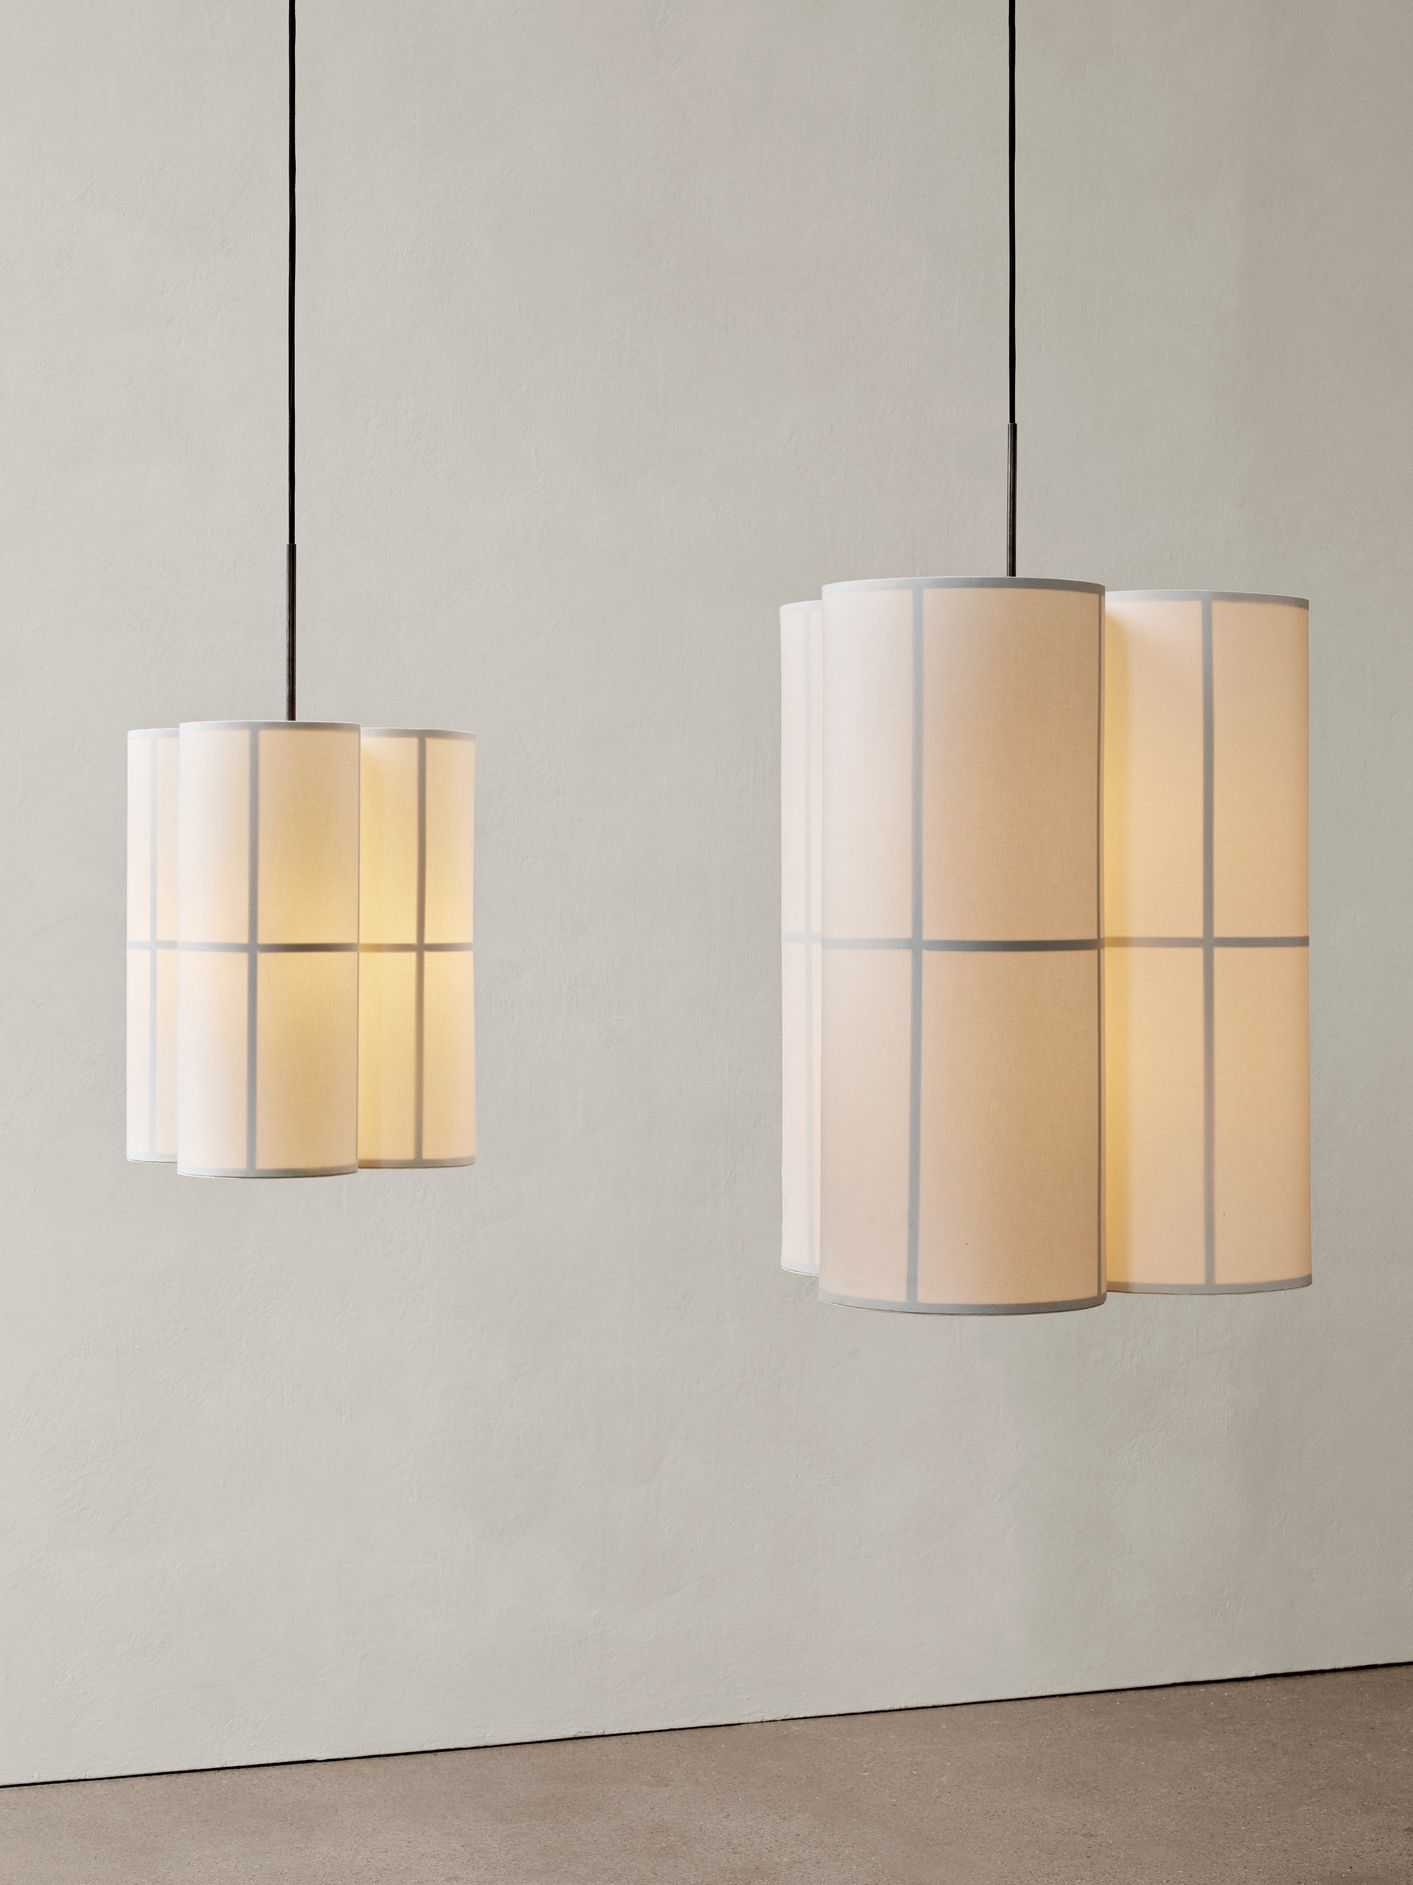 Menu The New Hashira Pendant Cluster Menu Launches The Hashira Collection A Modern Nordic Take On The Traditional Japanese Rice Paper Lantern Spri I 2020 Mobler